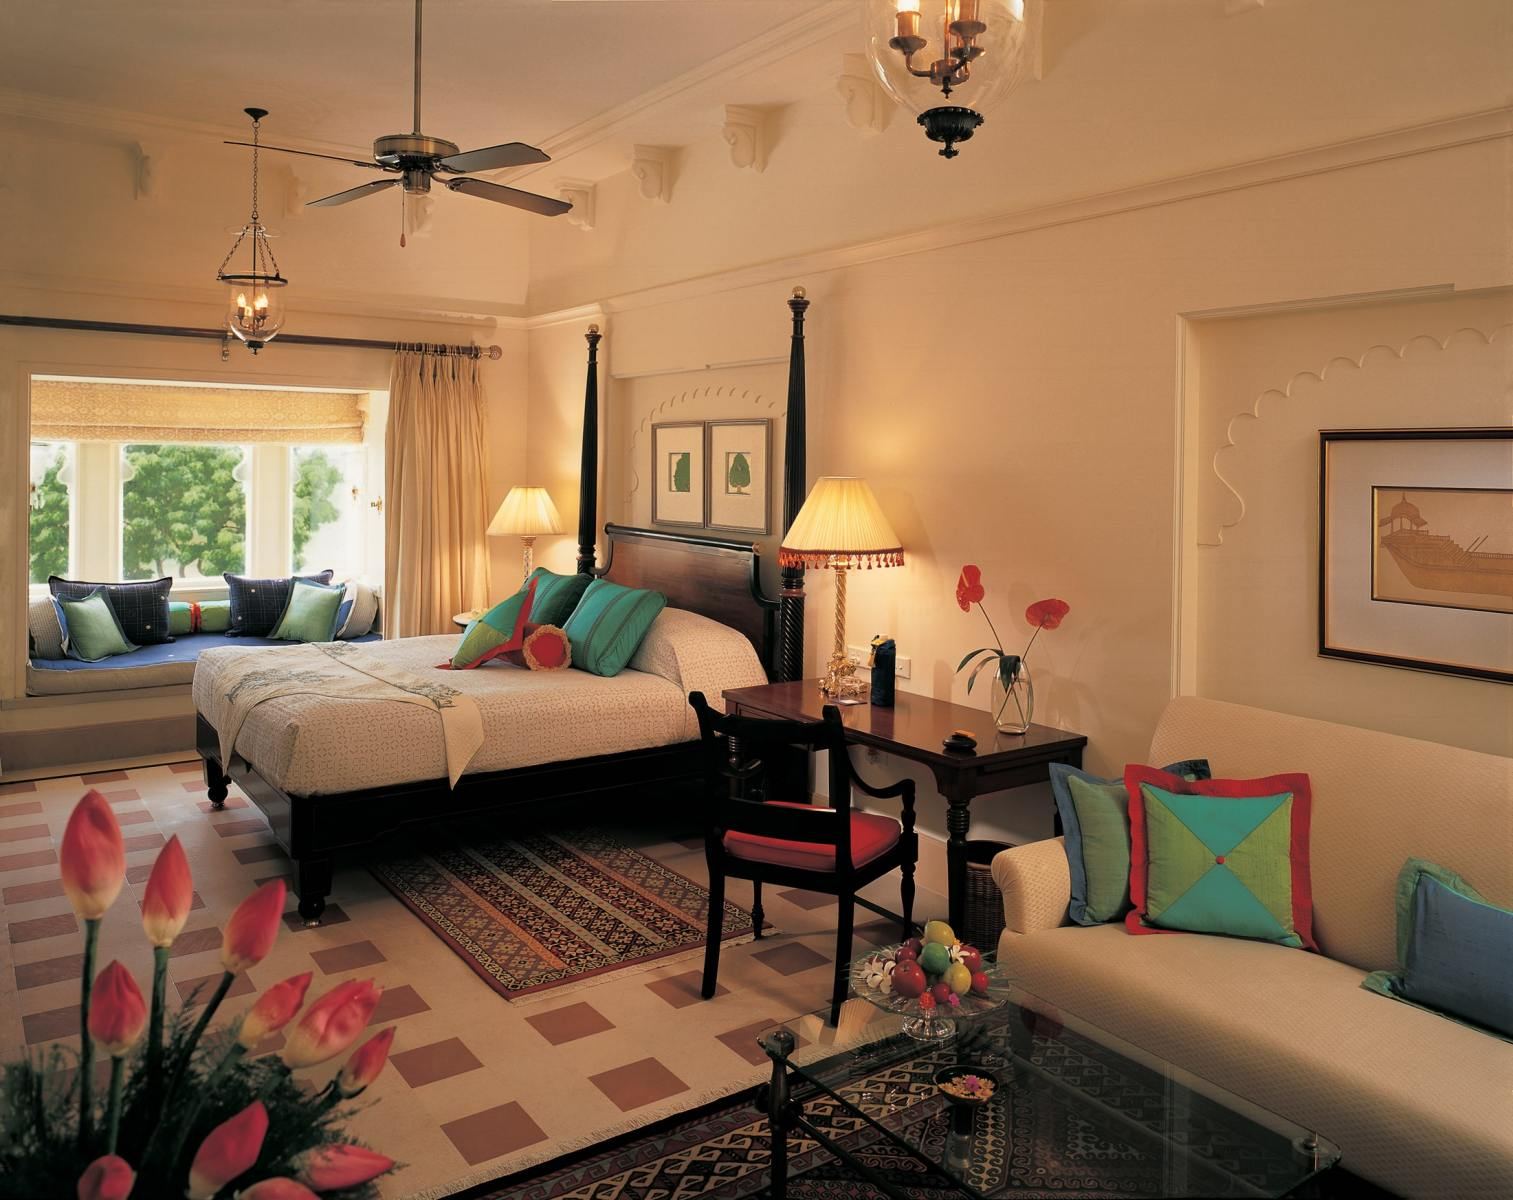 009-The-Oberoi-Udaivilas-Premier-Room-with-Garden-View-min